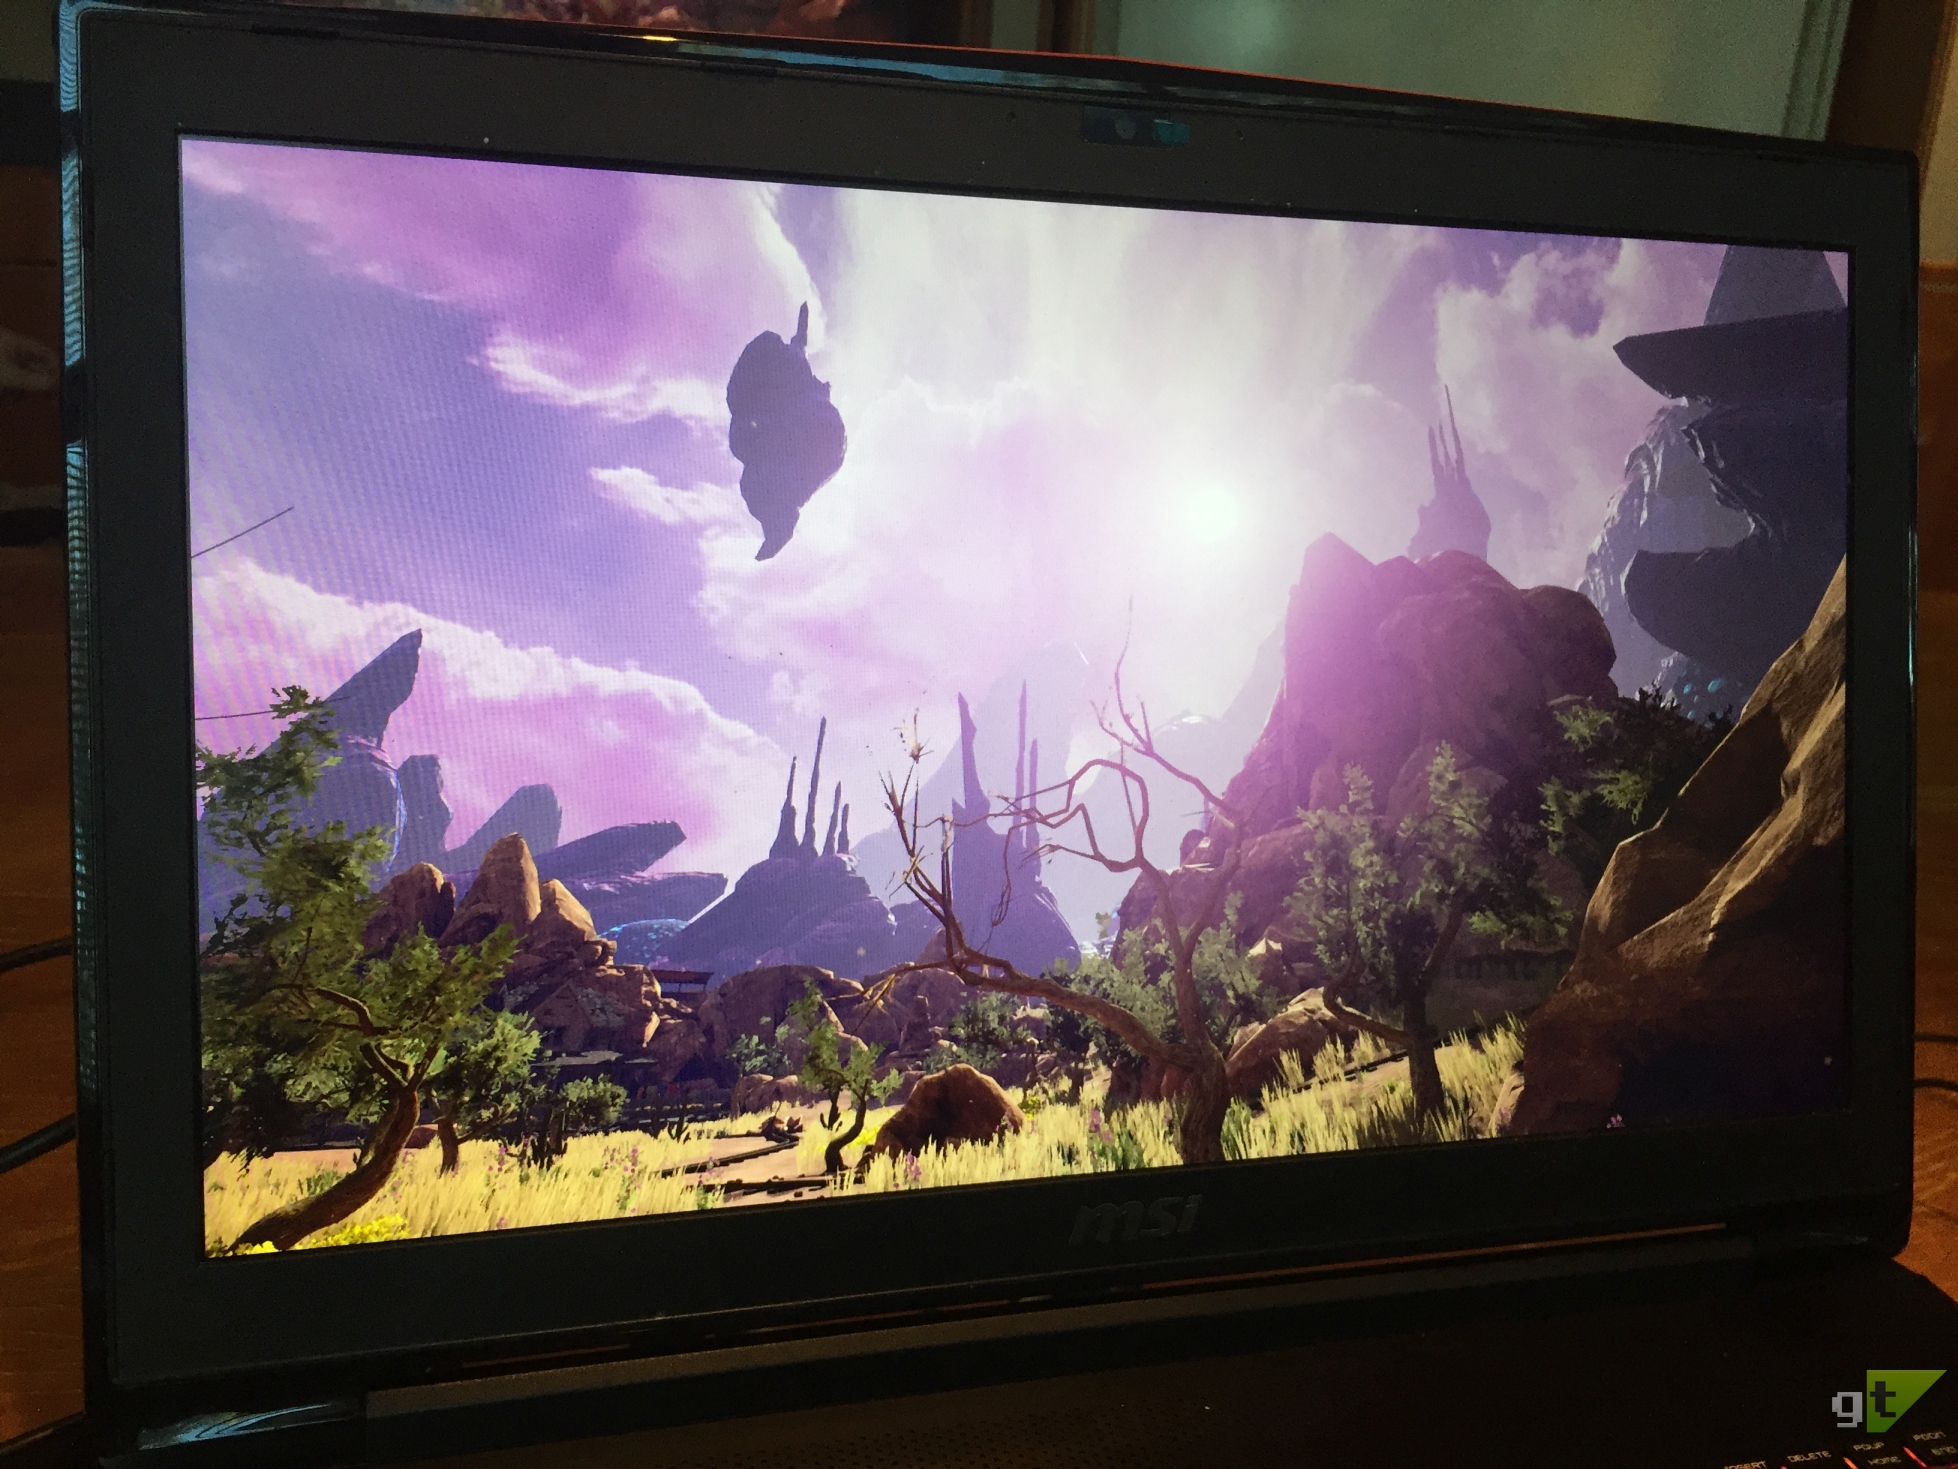 The artistic and technical prowess, not to mention quality,on display in Obduction is absolutely magnificent, especially for a Kickstarted game.